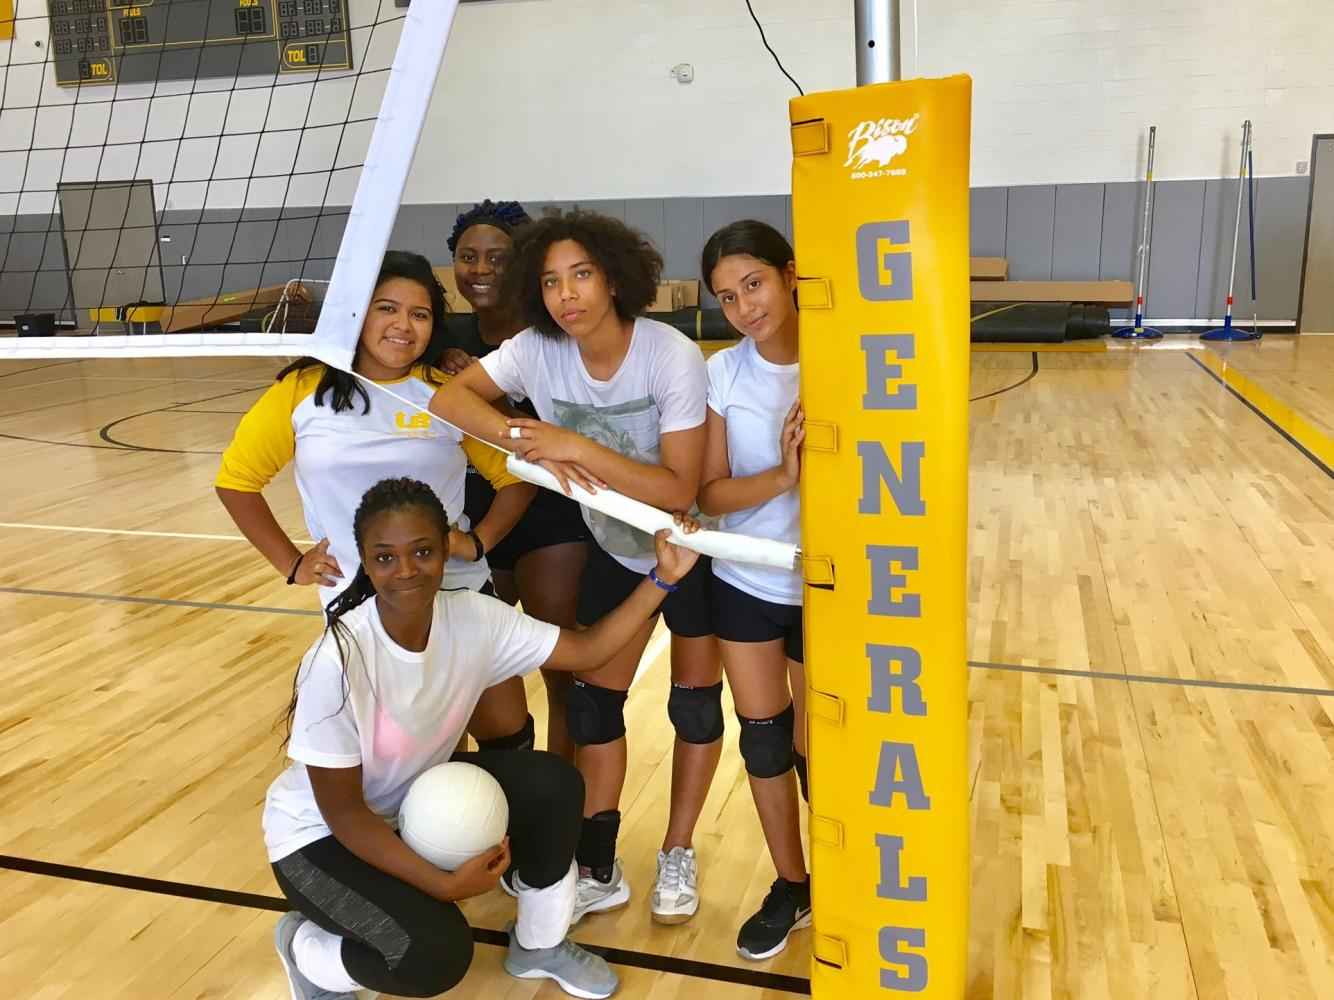 (L-R): Vanessa Villatoro, Pascaline Chuma, Adriana Sadler, Jackeline Umanzor & Awah Bodunrin will the lead the Wisdom Varsity Volleyball team into action in 2017.